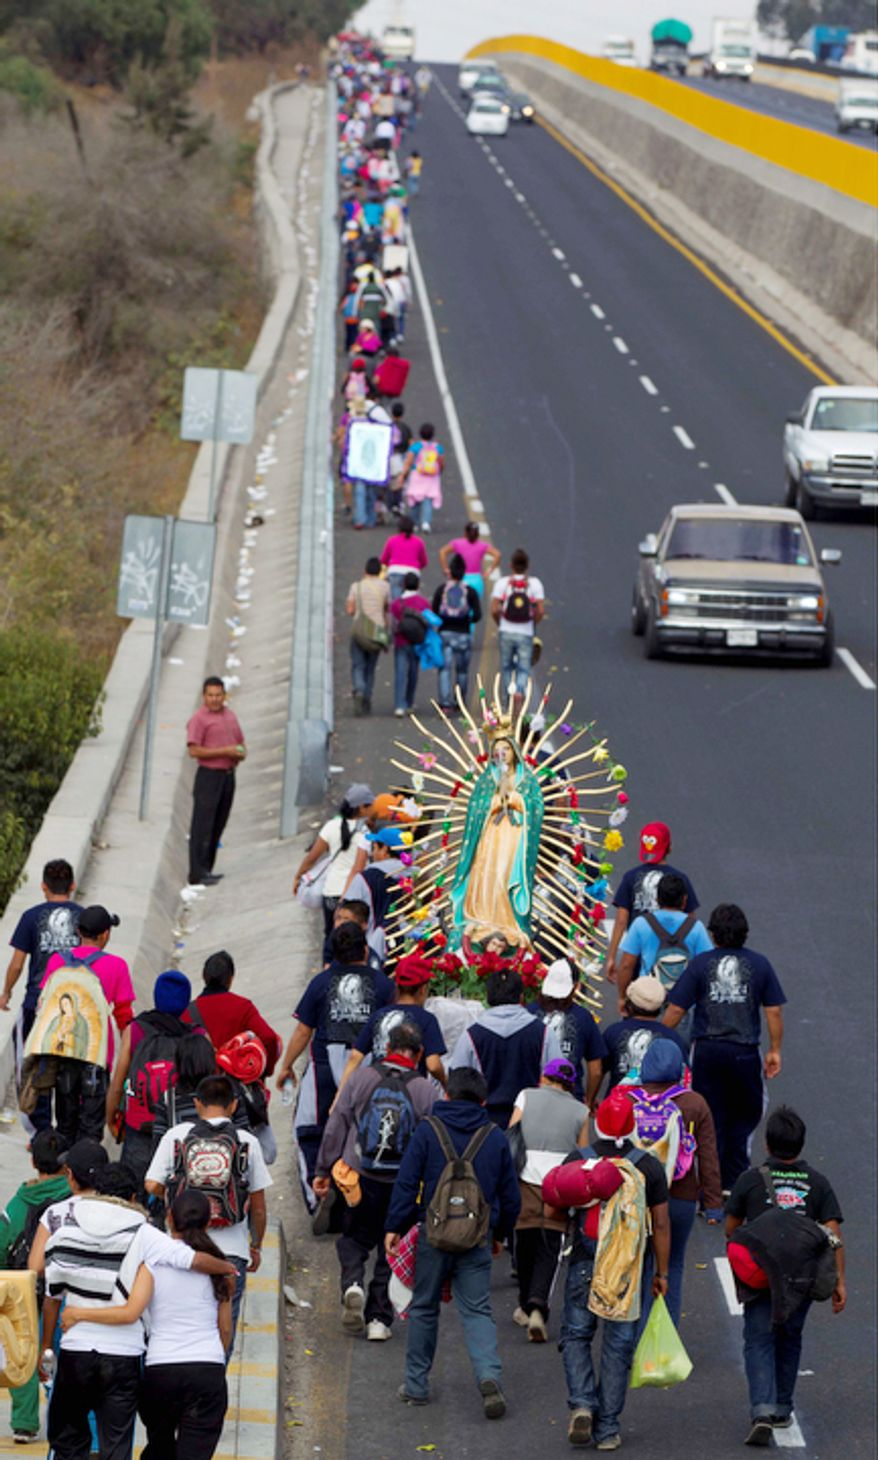 Pilgrims carry a statue of the Virgin of Guadalupe as they walk along the shoulder of a highway toward the Basilica of Guadalupe at the entrance to Mexico City, Tuesday, Dec. 11. 2012.   (AP Photo/Eduardo Verdugo)